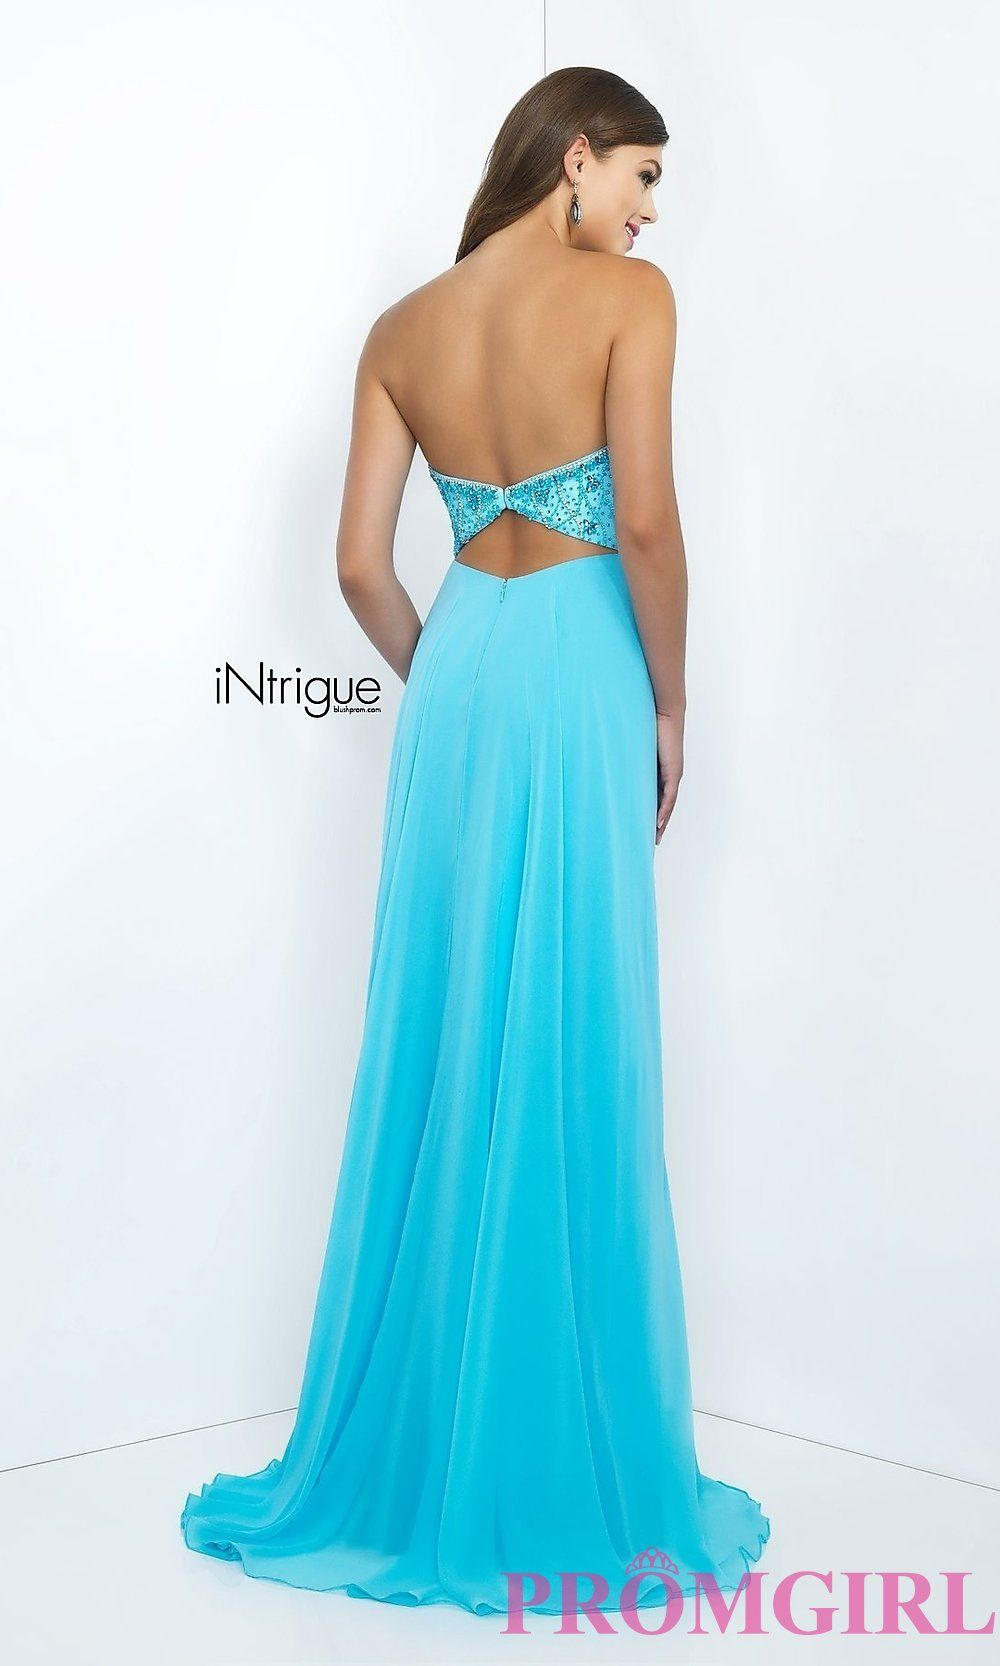 75a6966f6b6 Intrigue by Blush Strapless Sweetheart Prom Dress